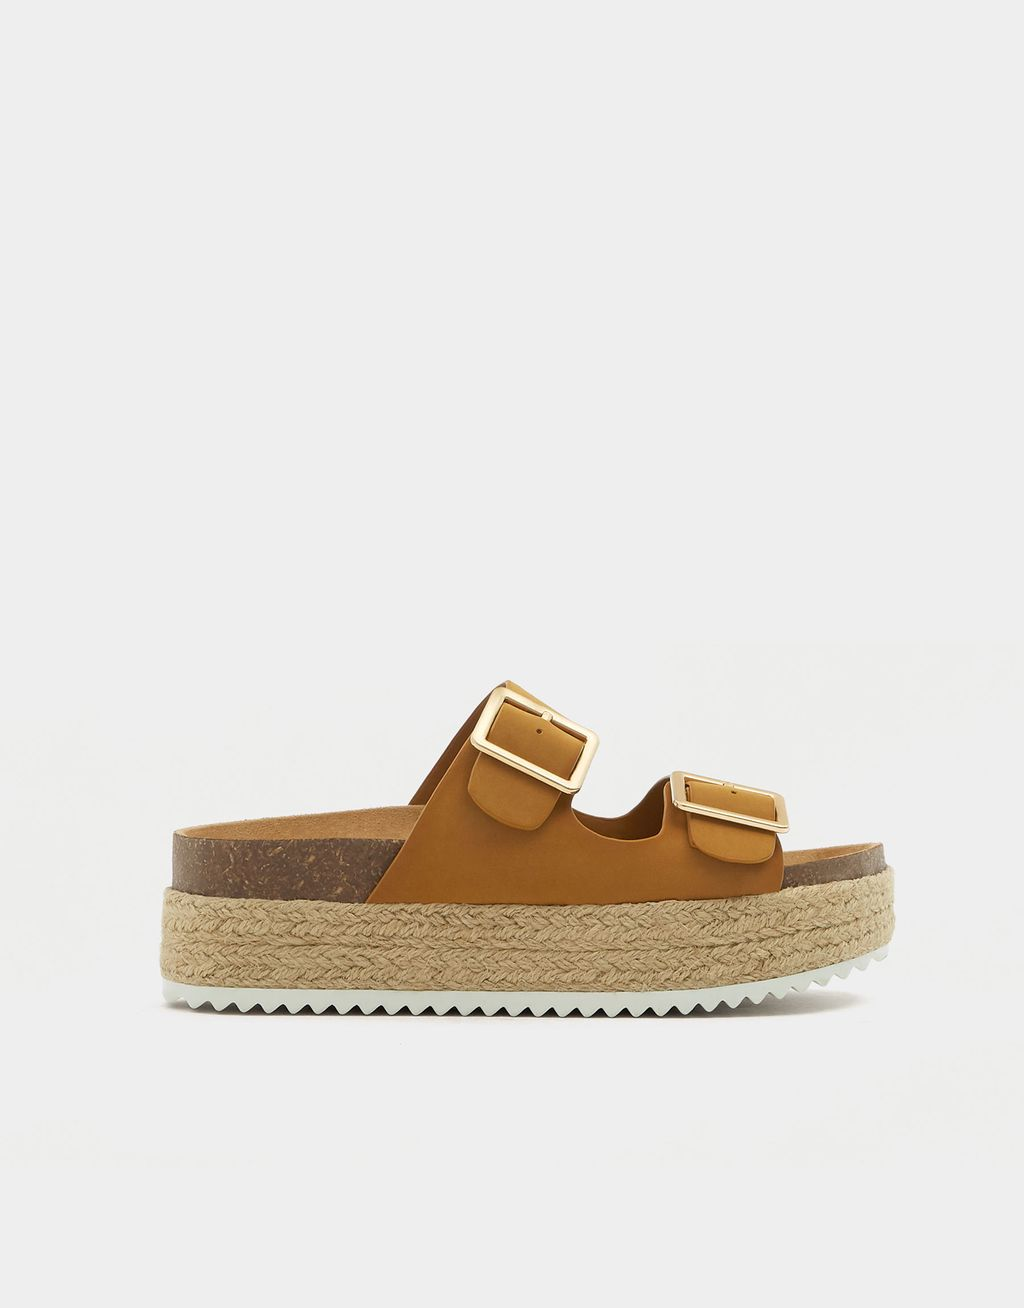 9252581dab8 Mustard Yellow Jute Sandals With Buckles - Pull   Bear